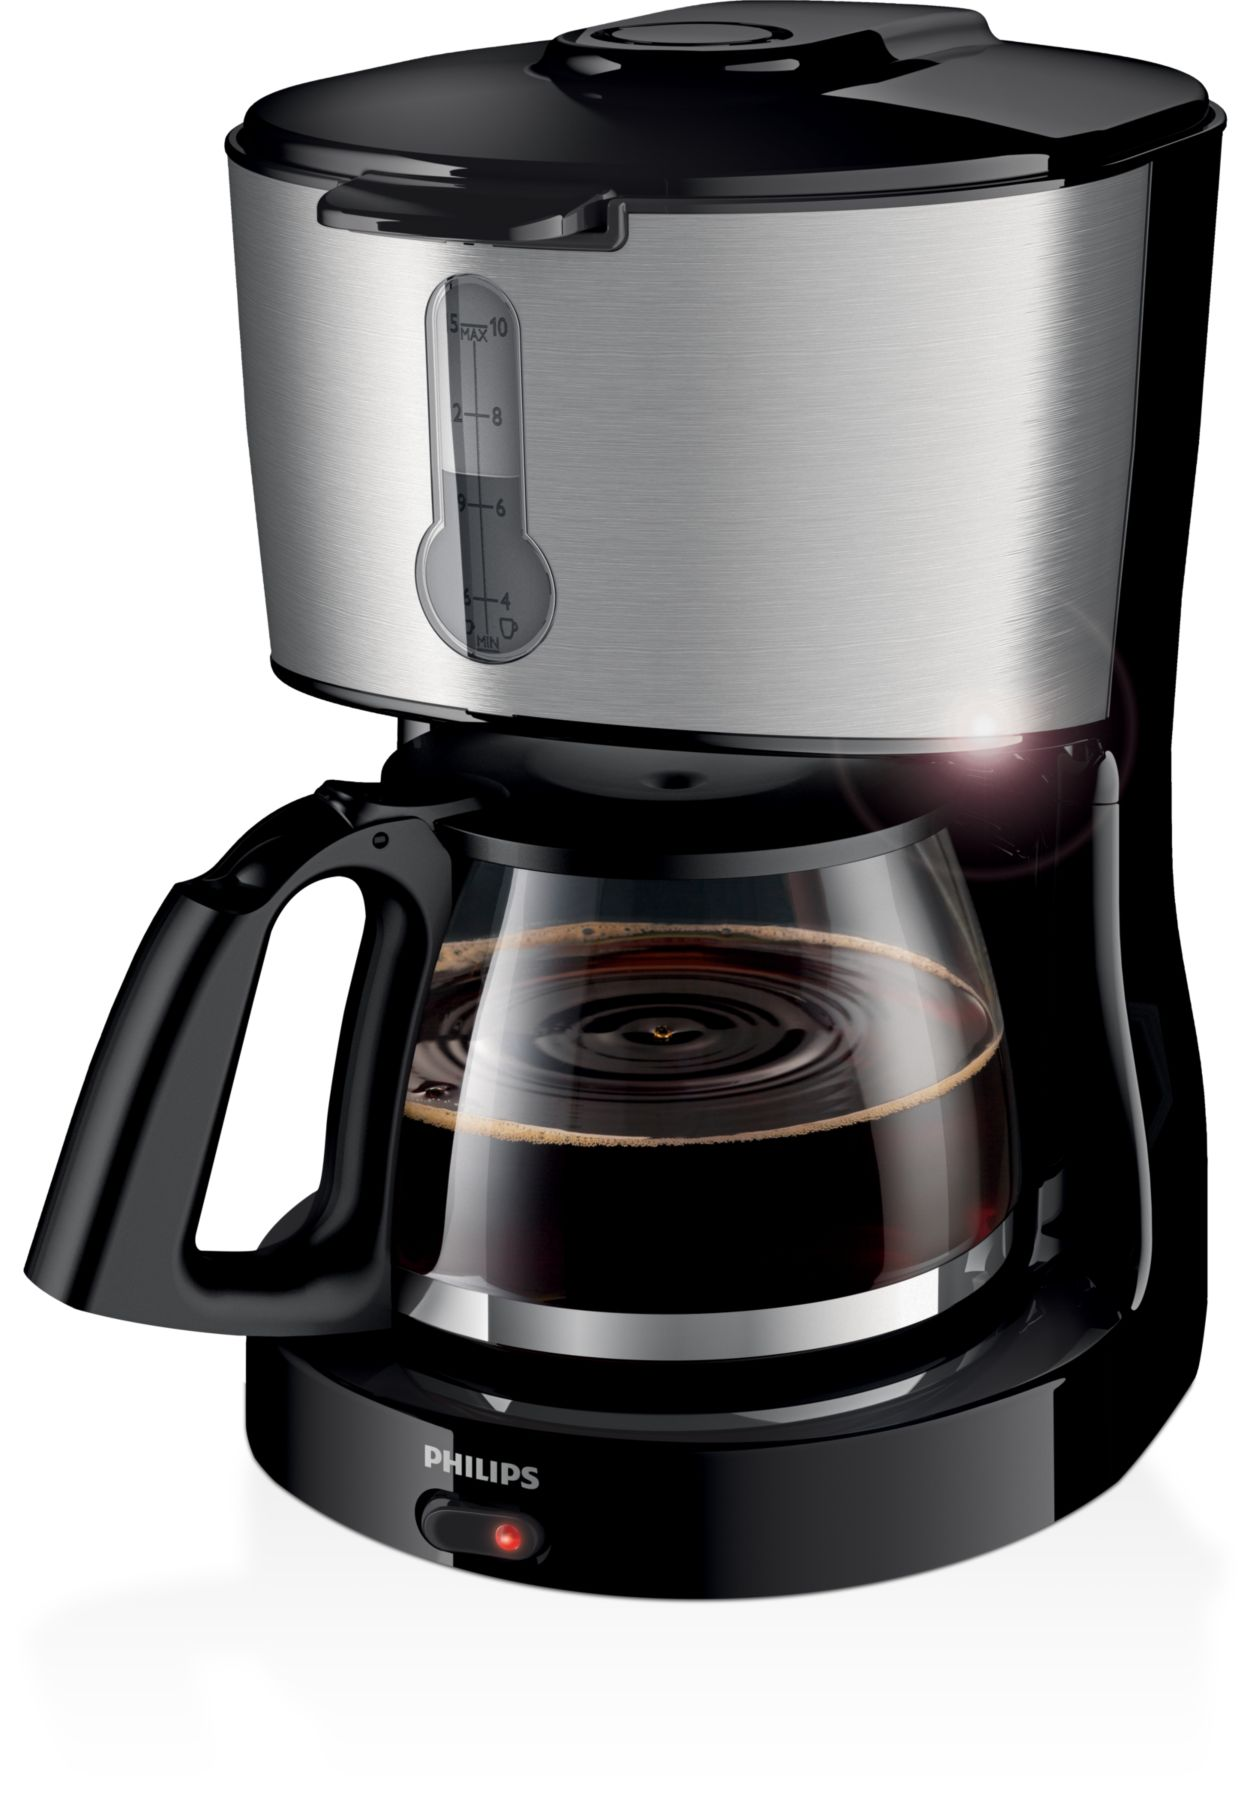 How Does Philips Coffee Maker Work : Viva Collection Coffee maker HD7458/00 Philips